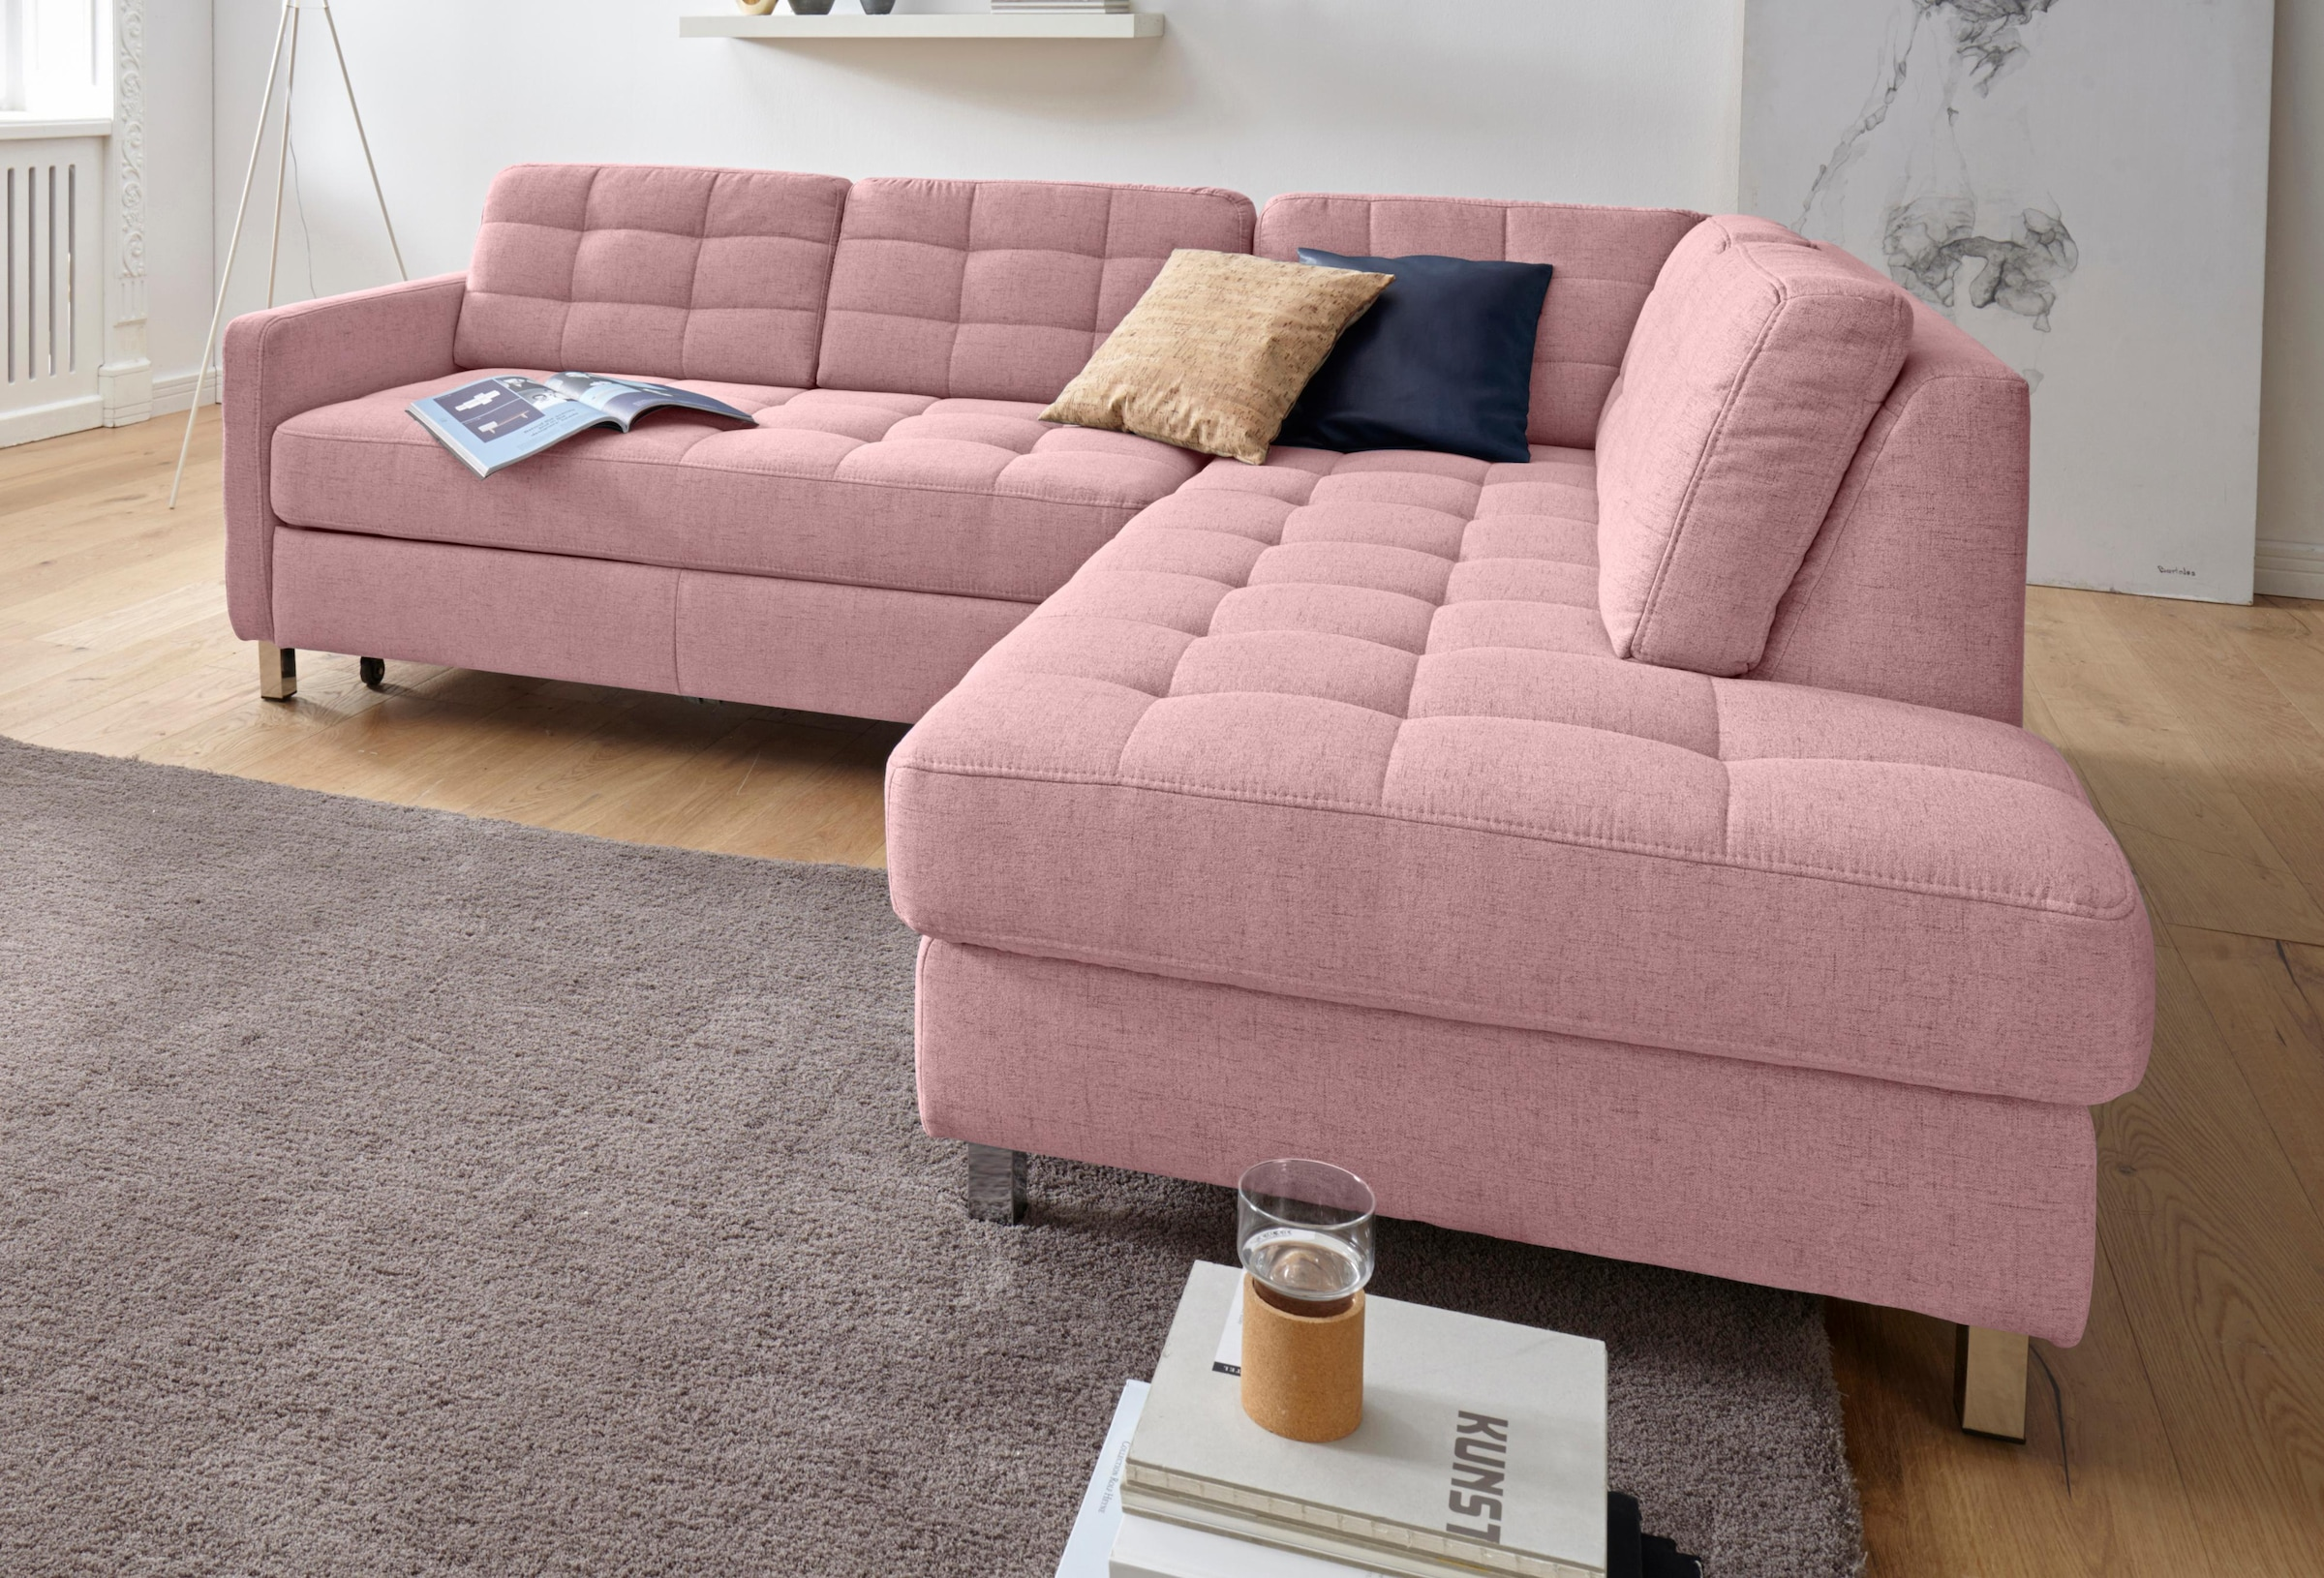 Schlafsofas Mit Bettkasten Neckermann Sit&more Ecksofa - Batzo Price Comparisons